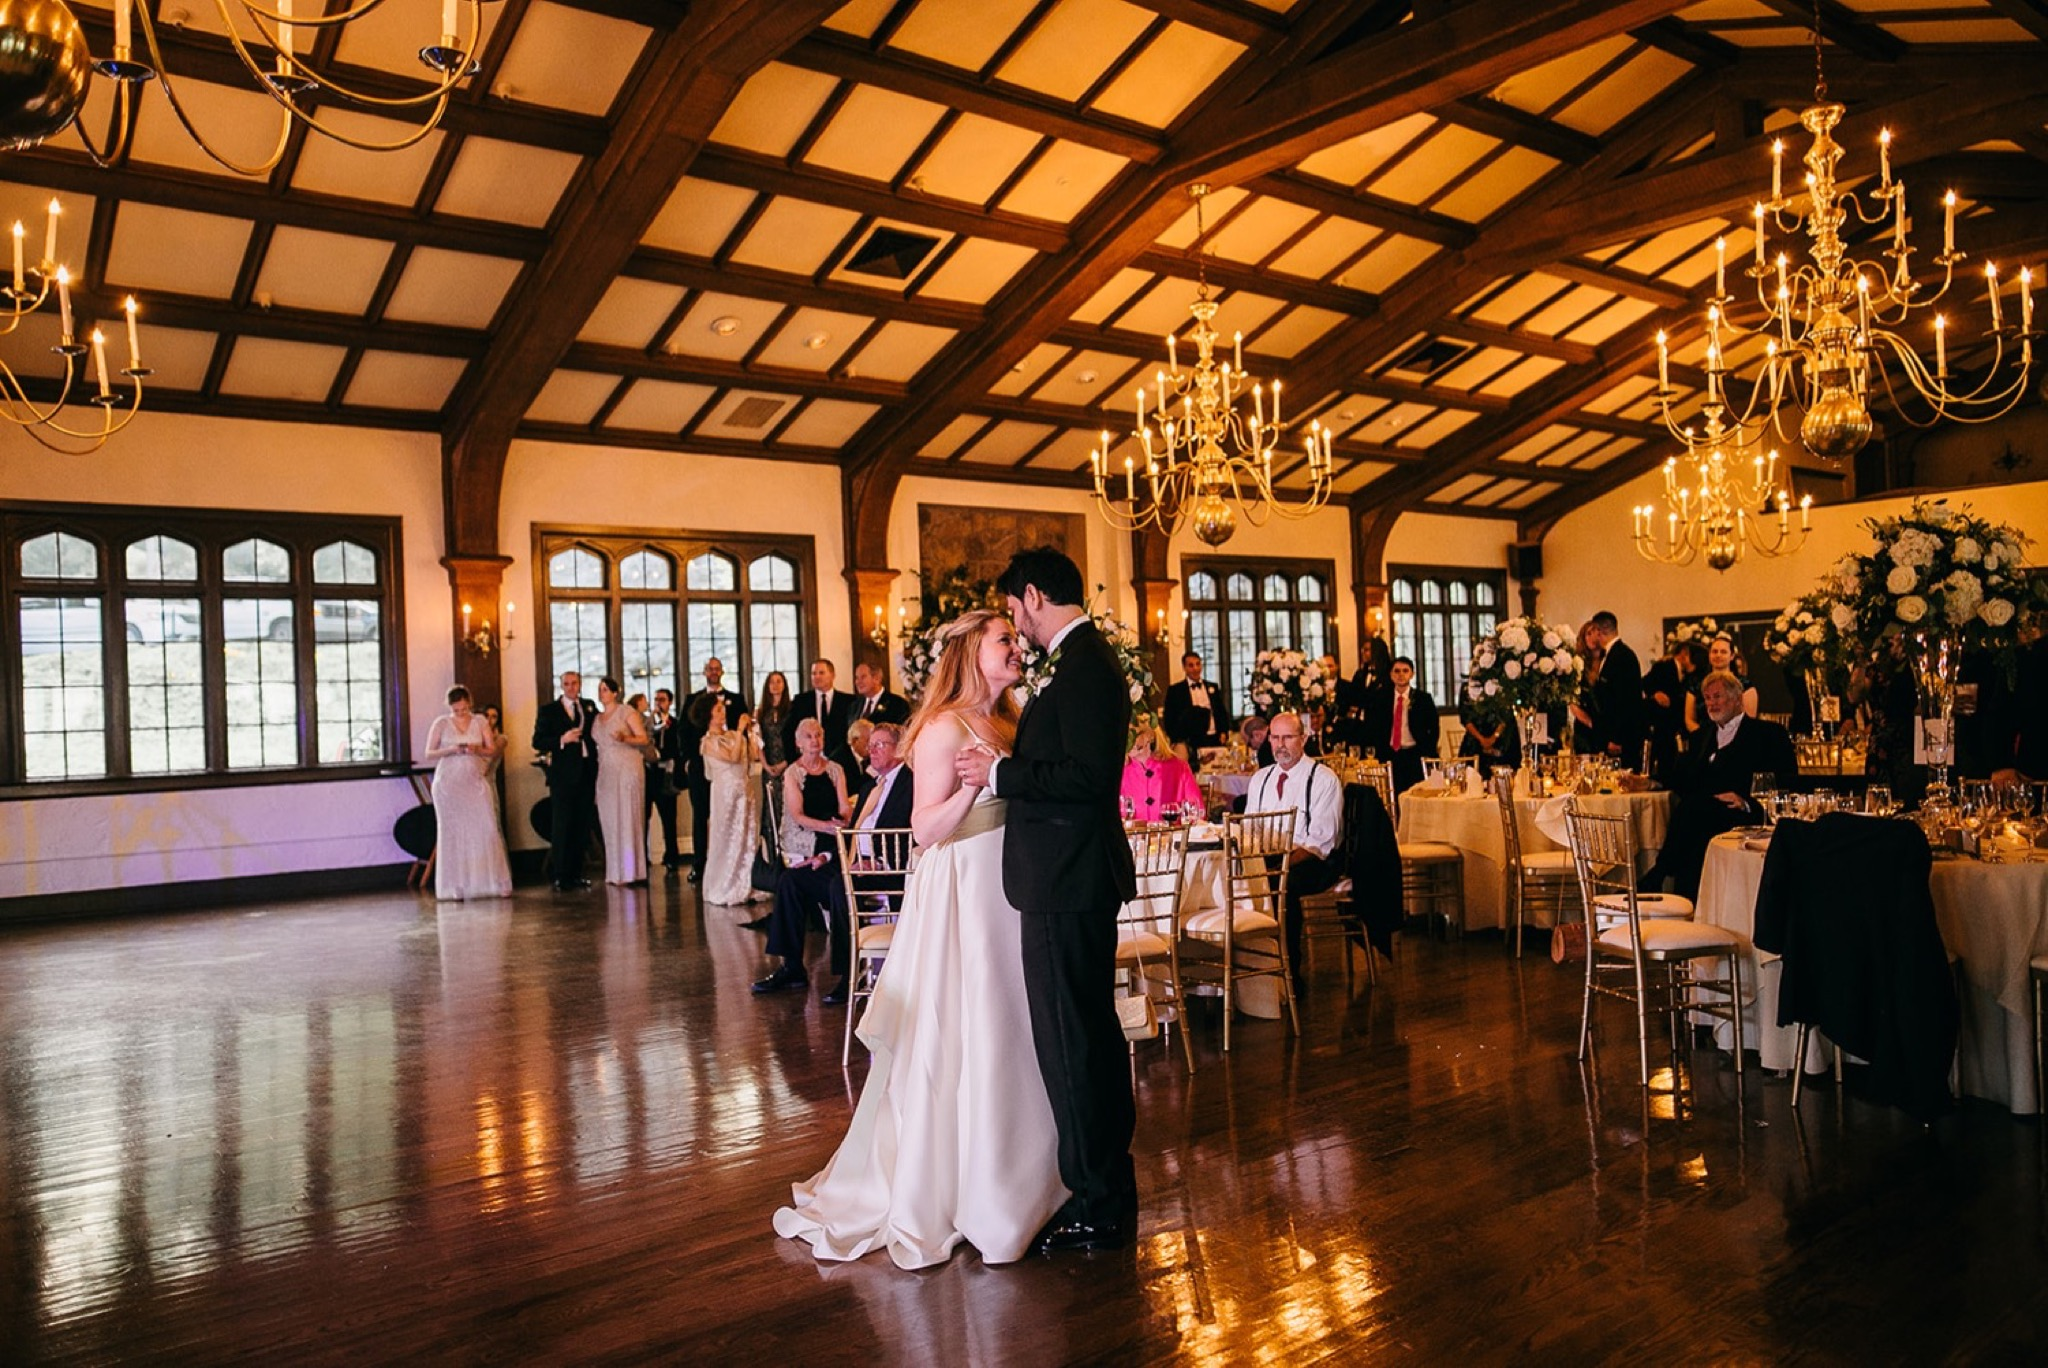 bride and groom share first dance in the ballroom at Lookout Mountain Club wedding reception while guests watch